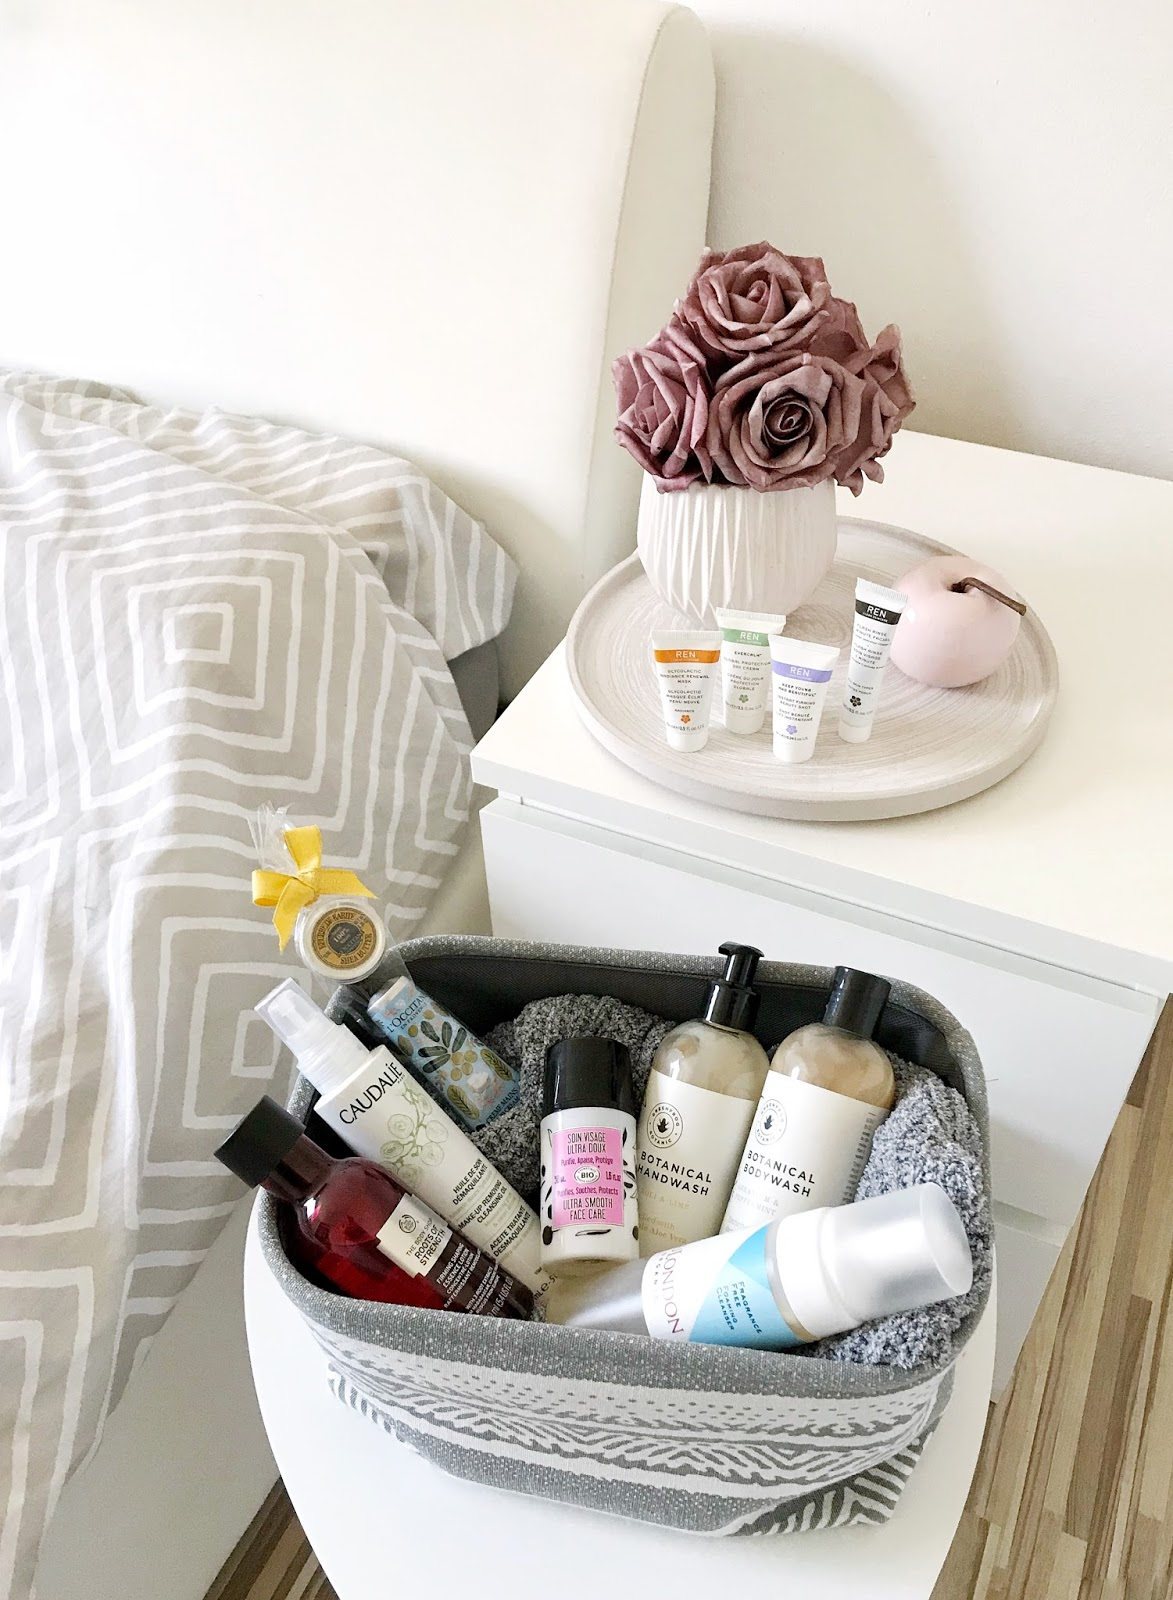 caudalie make-up removing oil, the body shop roots of strenght firming essence, oliv' ultra smooth face care, greenfrog botanic, l'occitane hand cream, mulondon, ren skincare